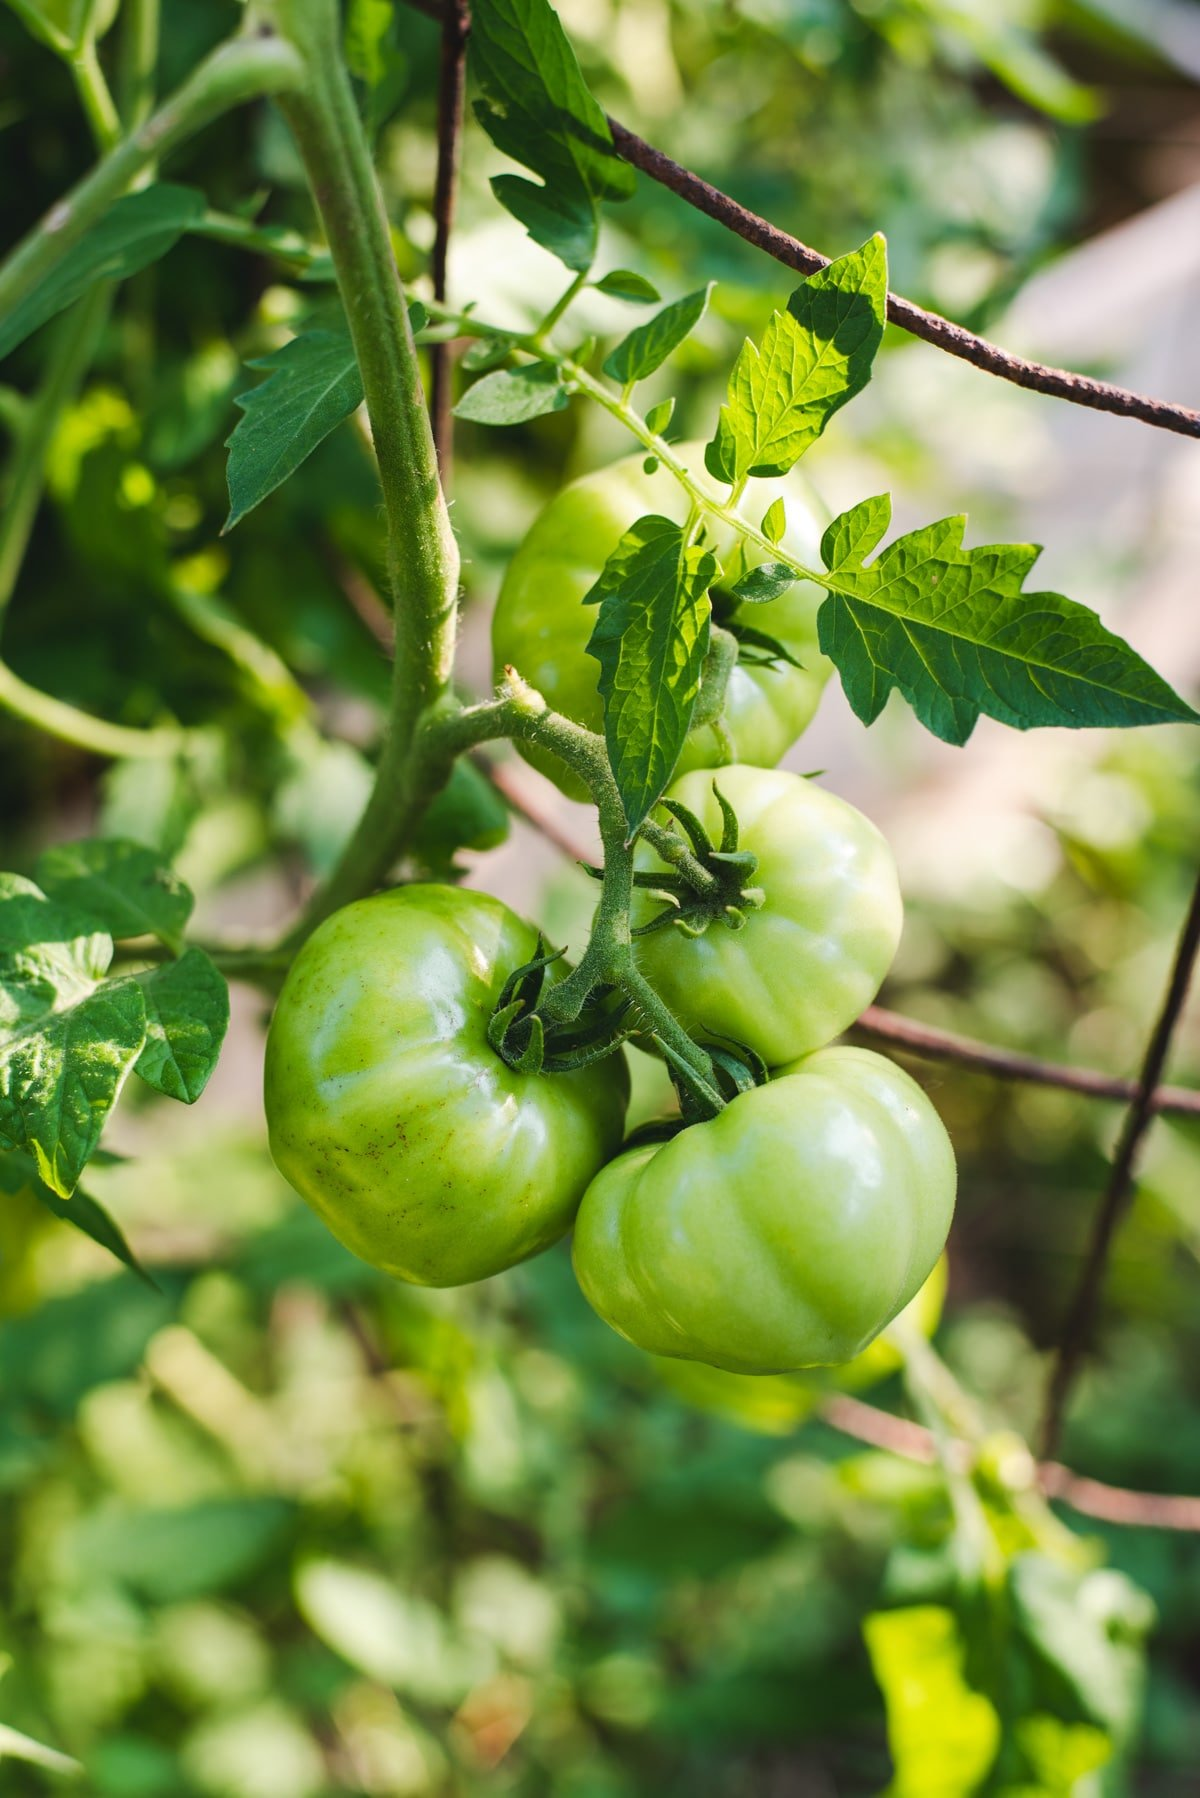 Three green tomatoes growing on a tomato plant